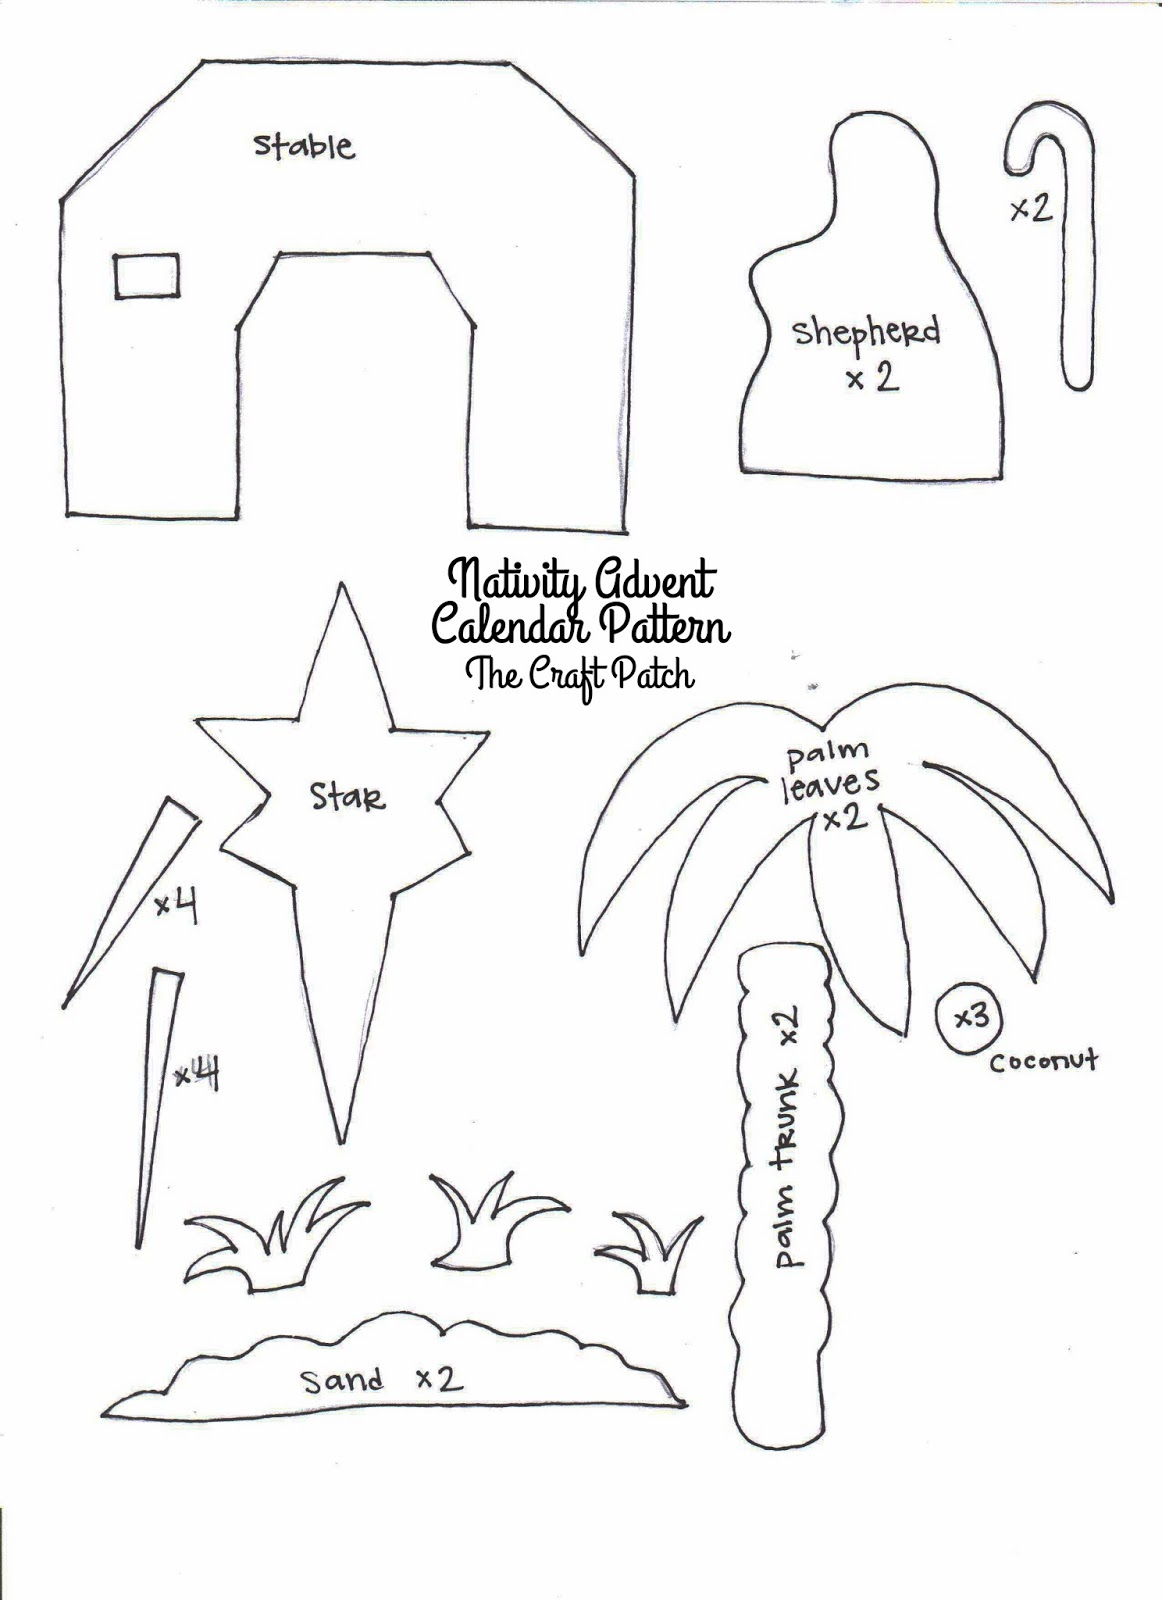 printable nativity template here are the pattern pieces